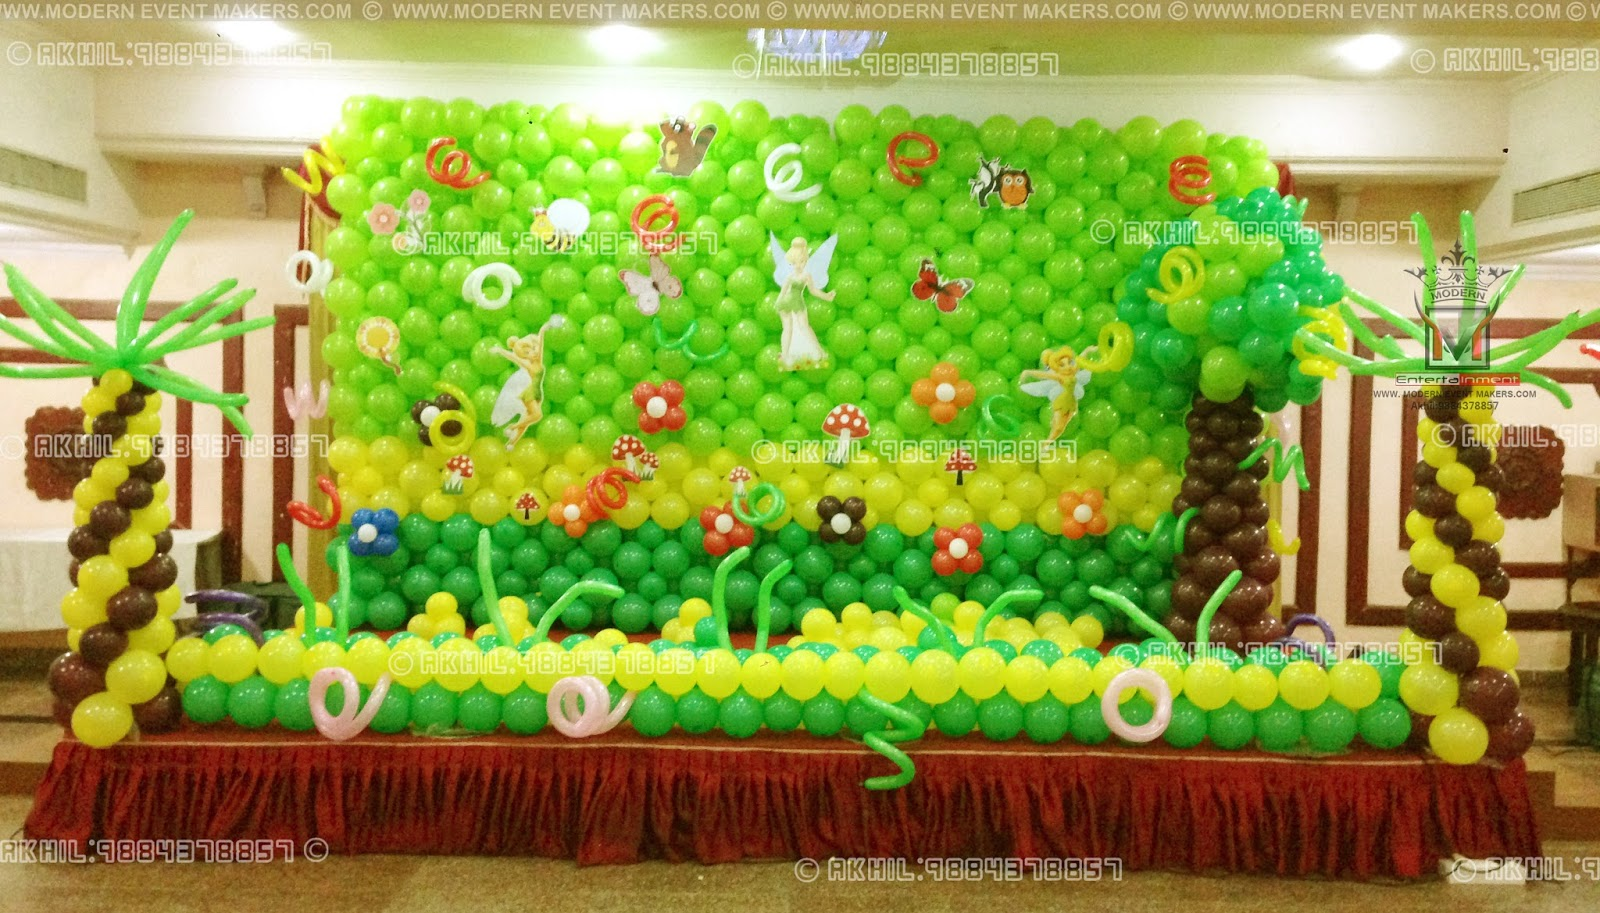 Event management company balloon decoration modern for Balloon decoration images party